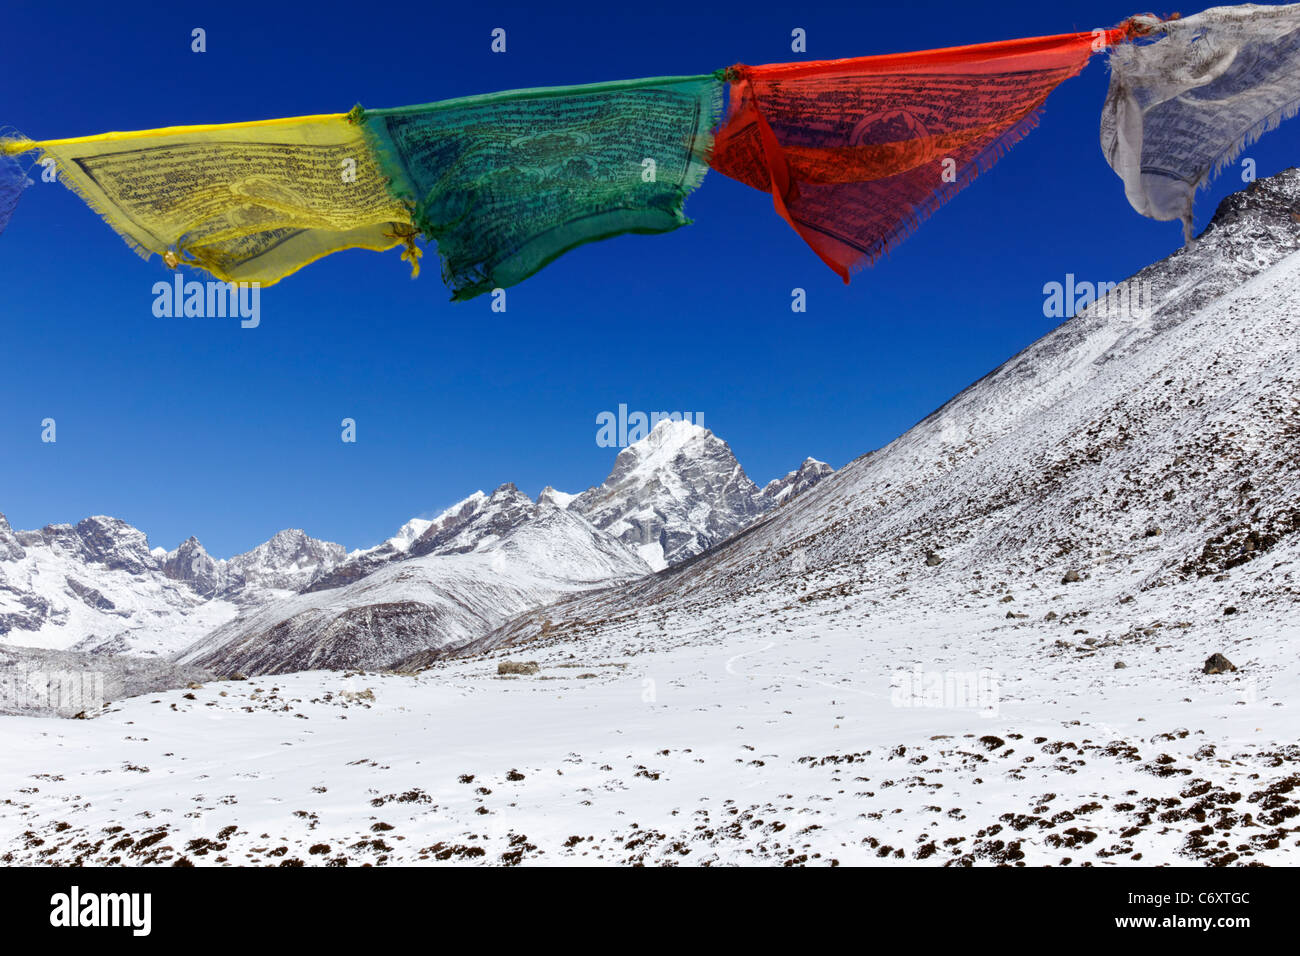 Prayer flags and snowy mountains, Everest Region, Nepal - Stock Image